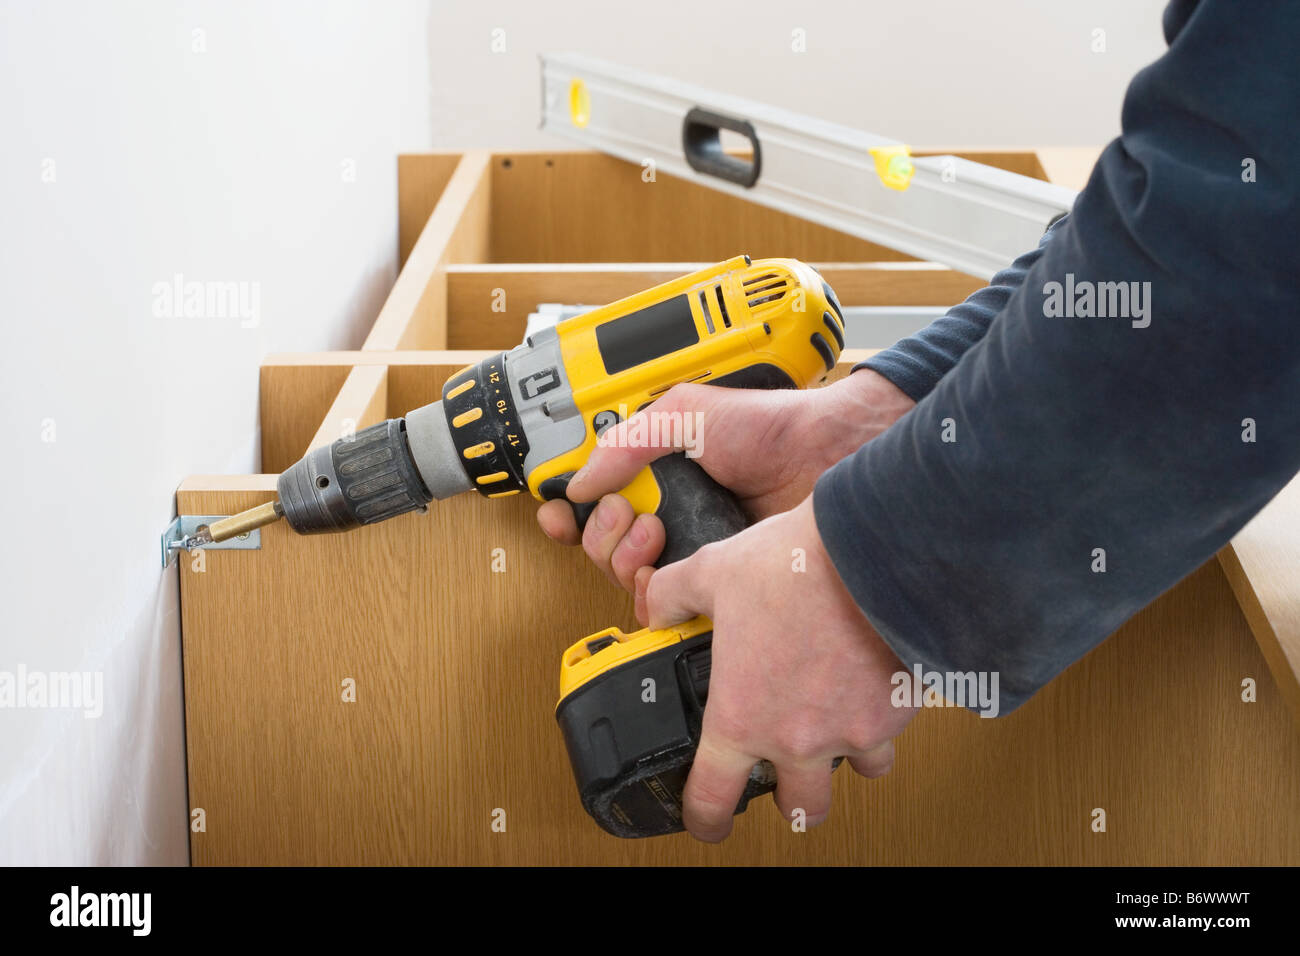 Man screwing a shelf to a wall - Stock Image